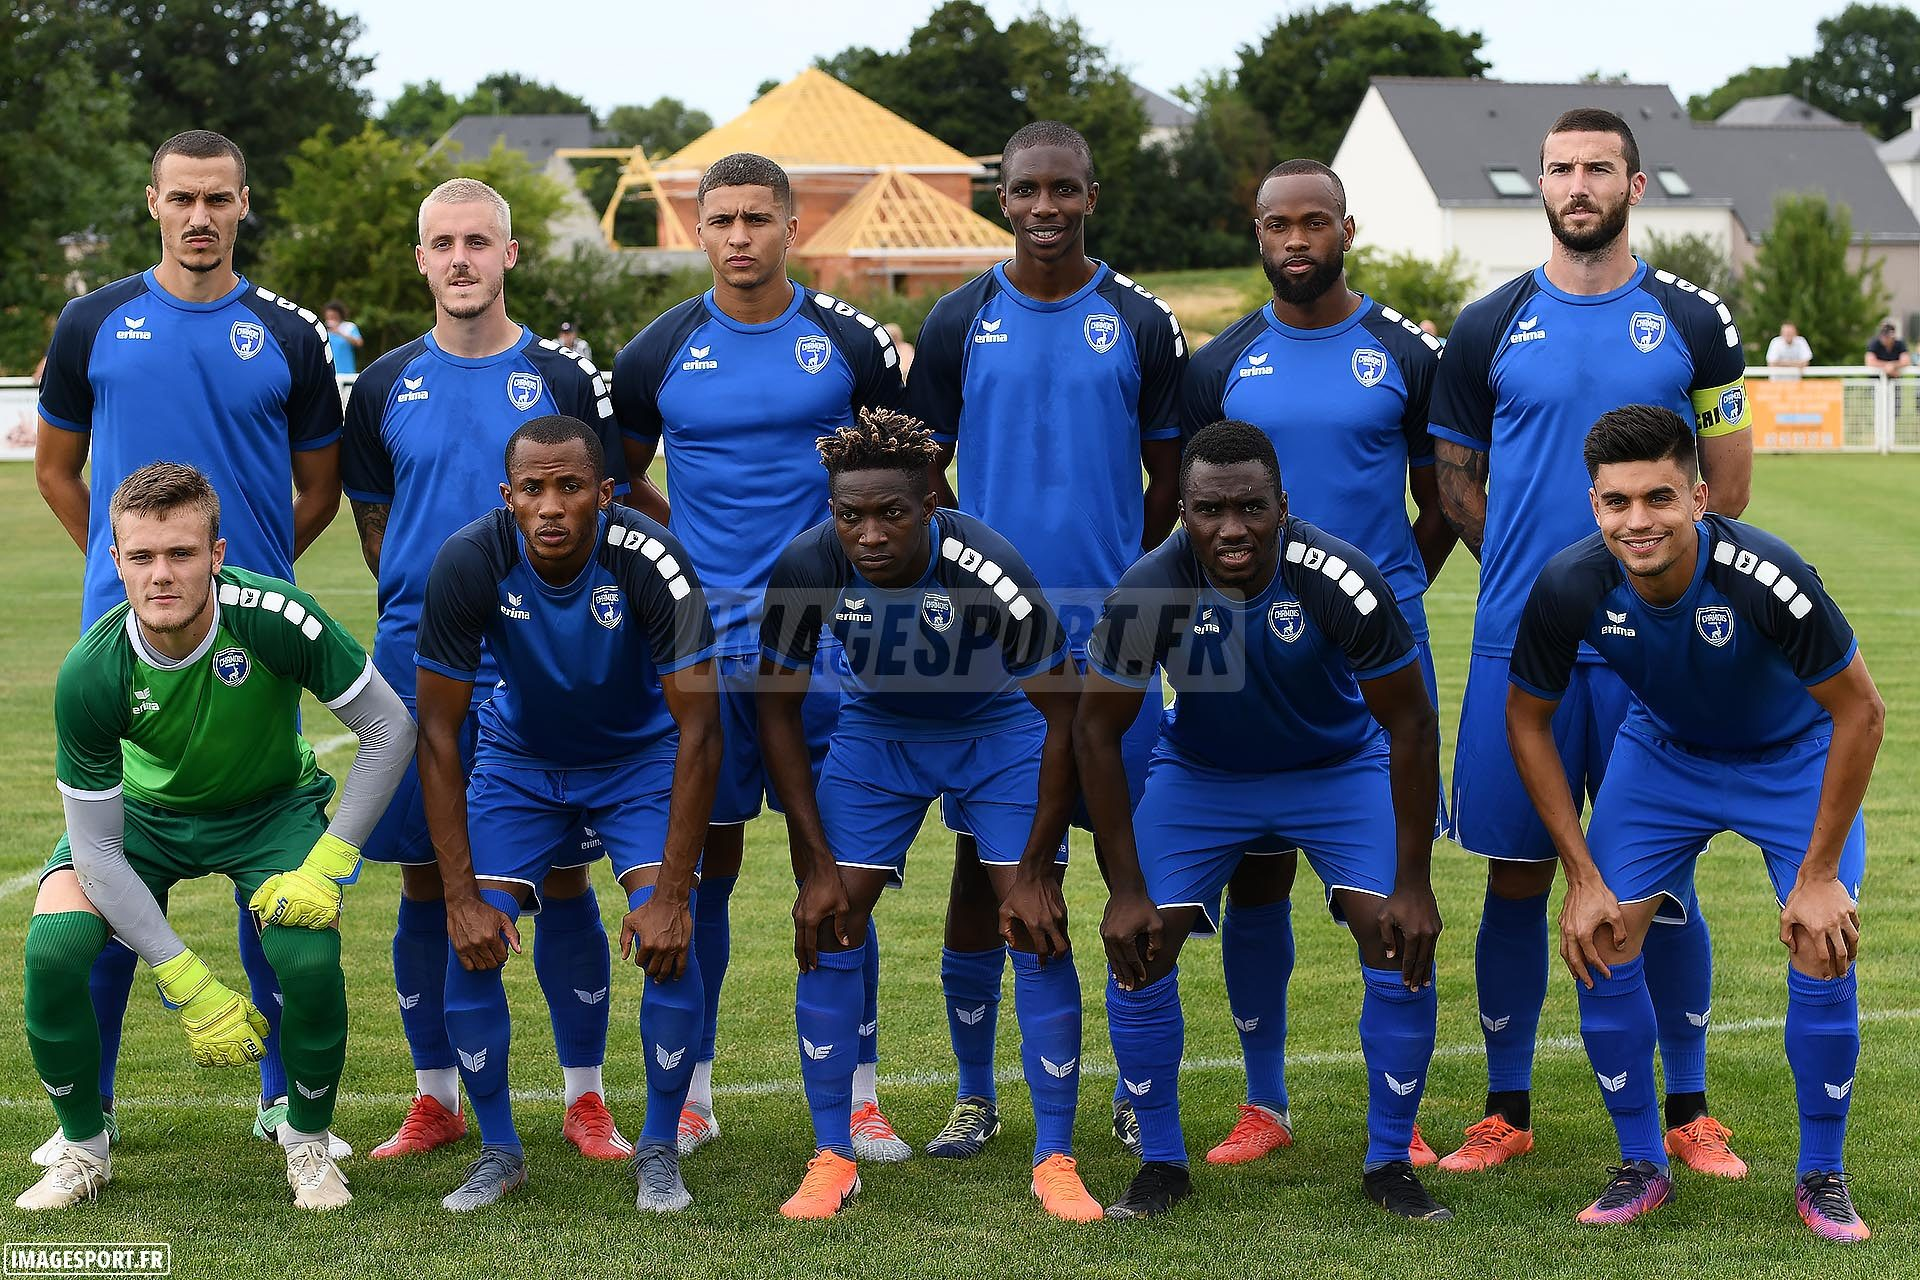 national-laval-niort-2019-2020_05